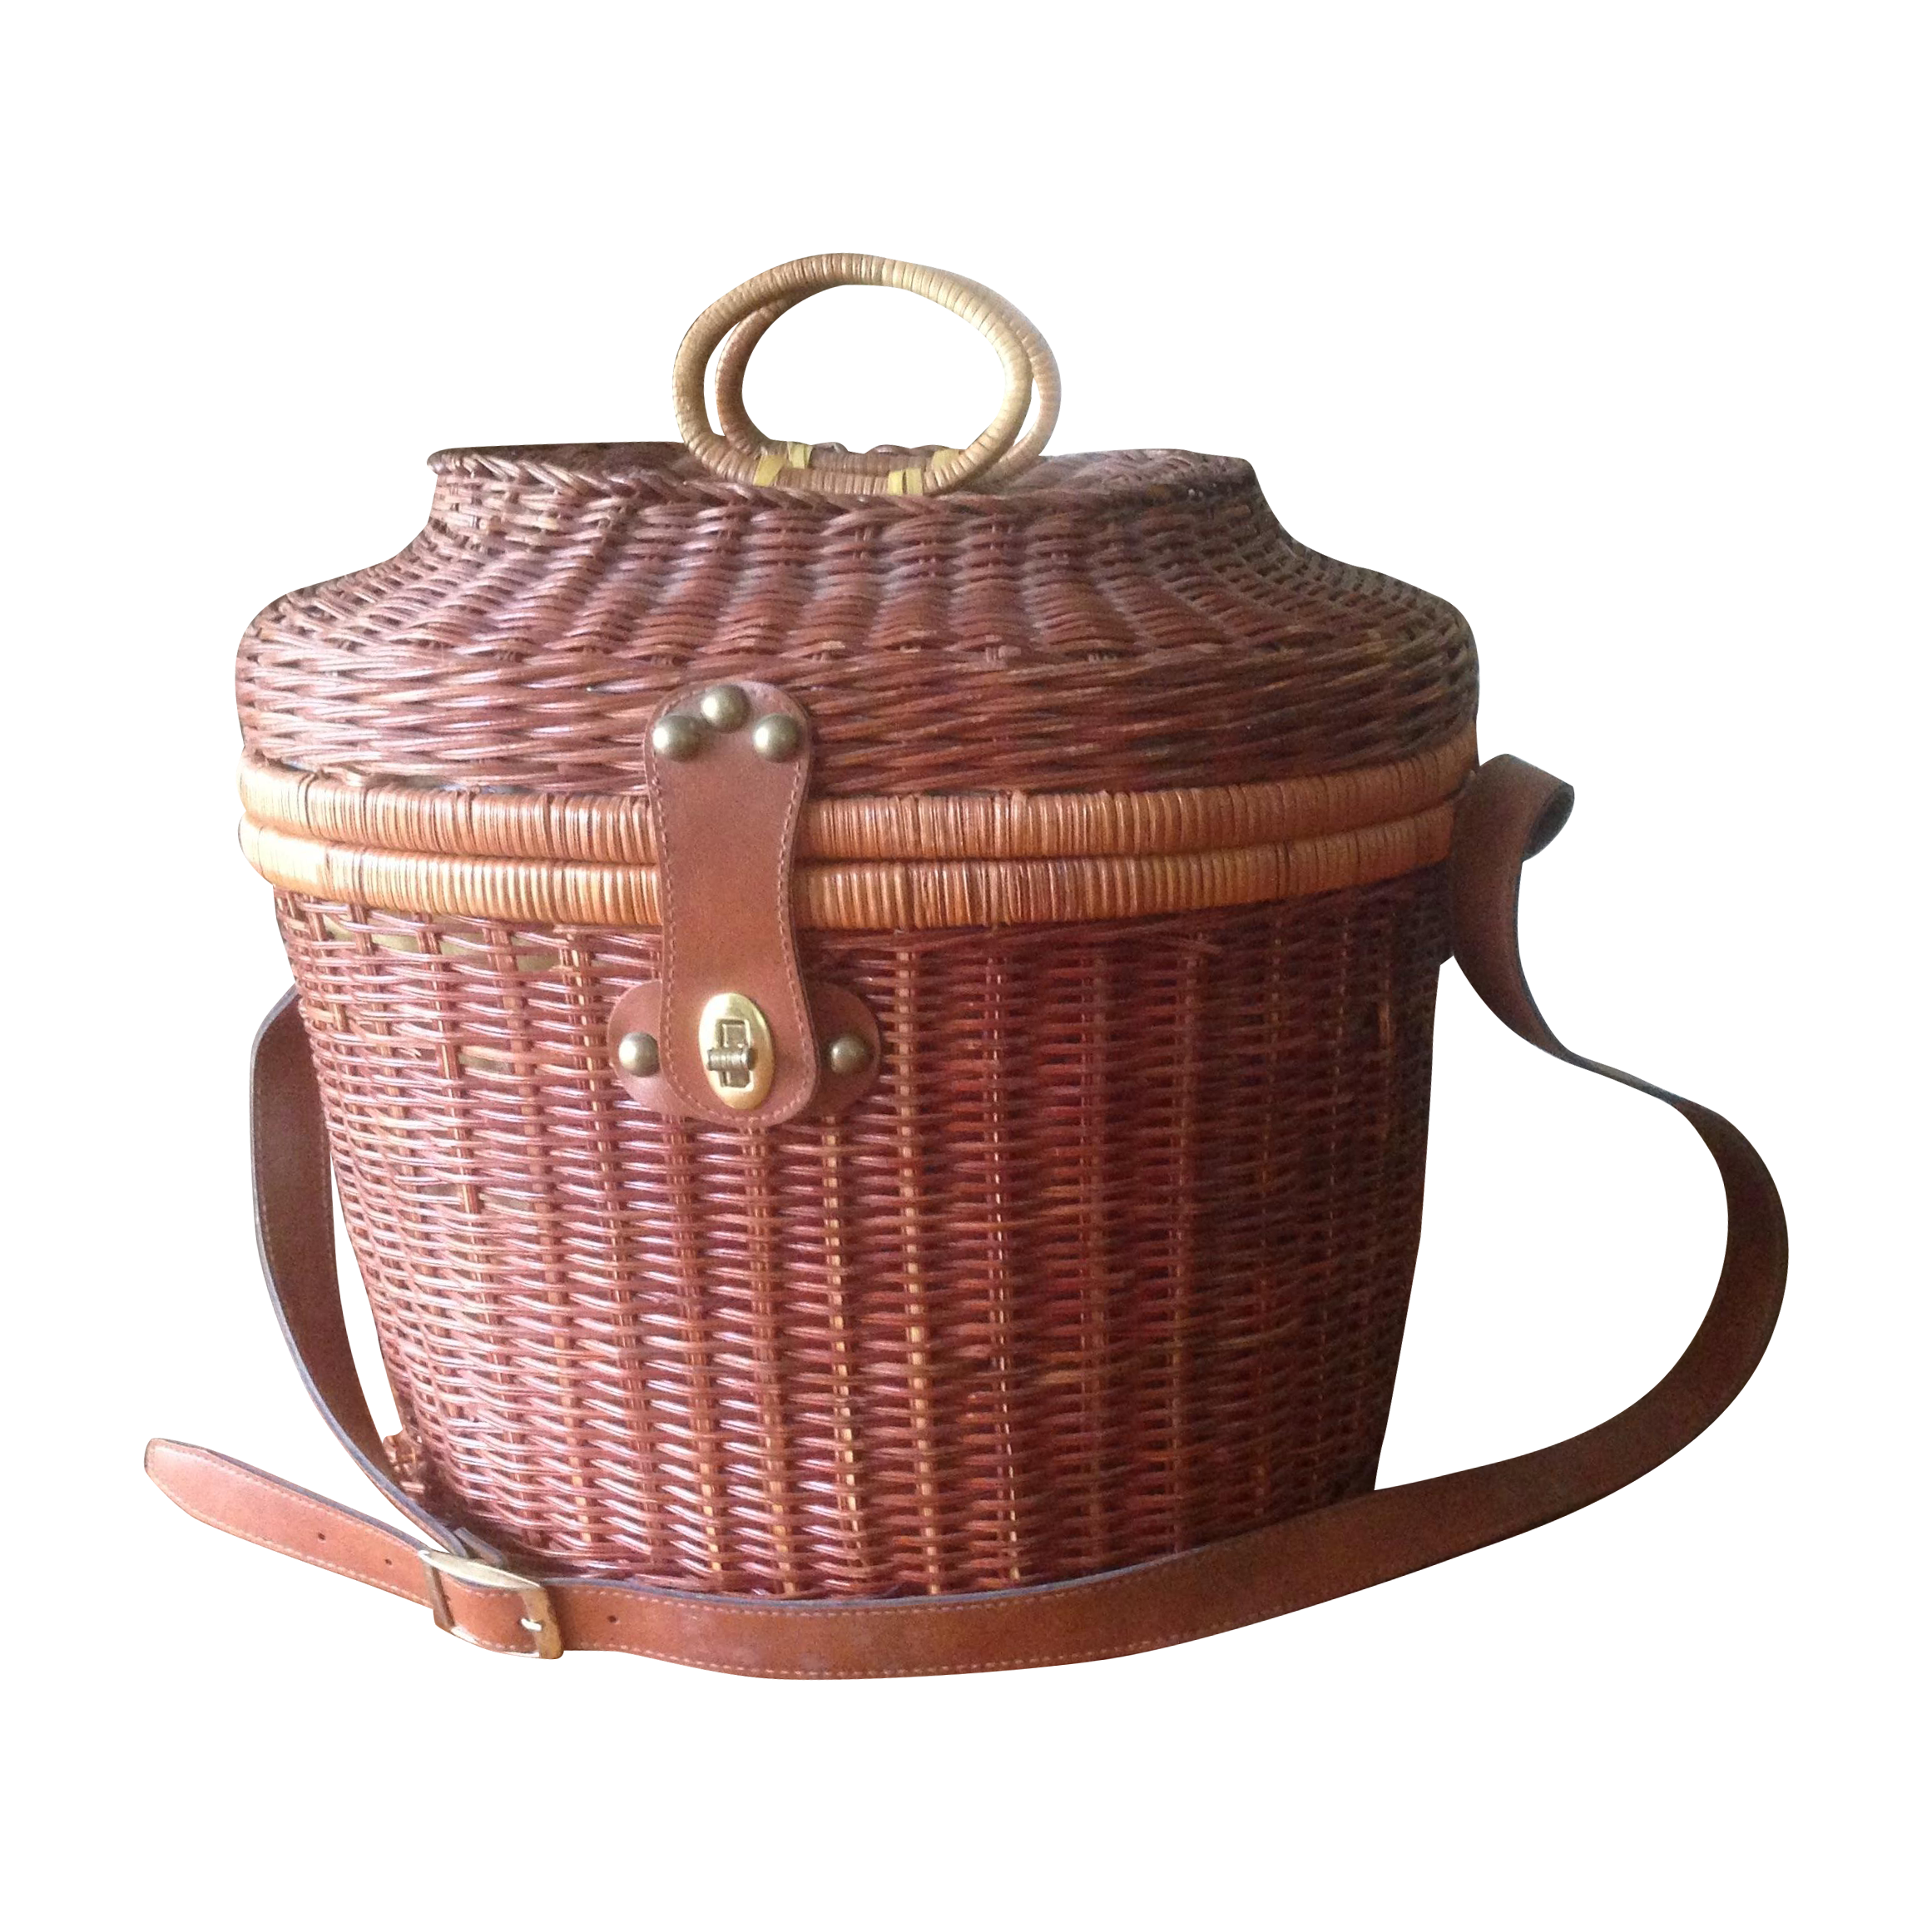 Myer Wicker Picnic Basket : Vintage wicker leather picnic basket chairish